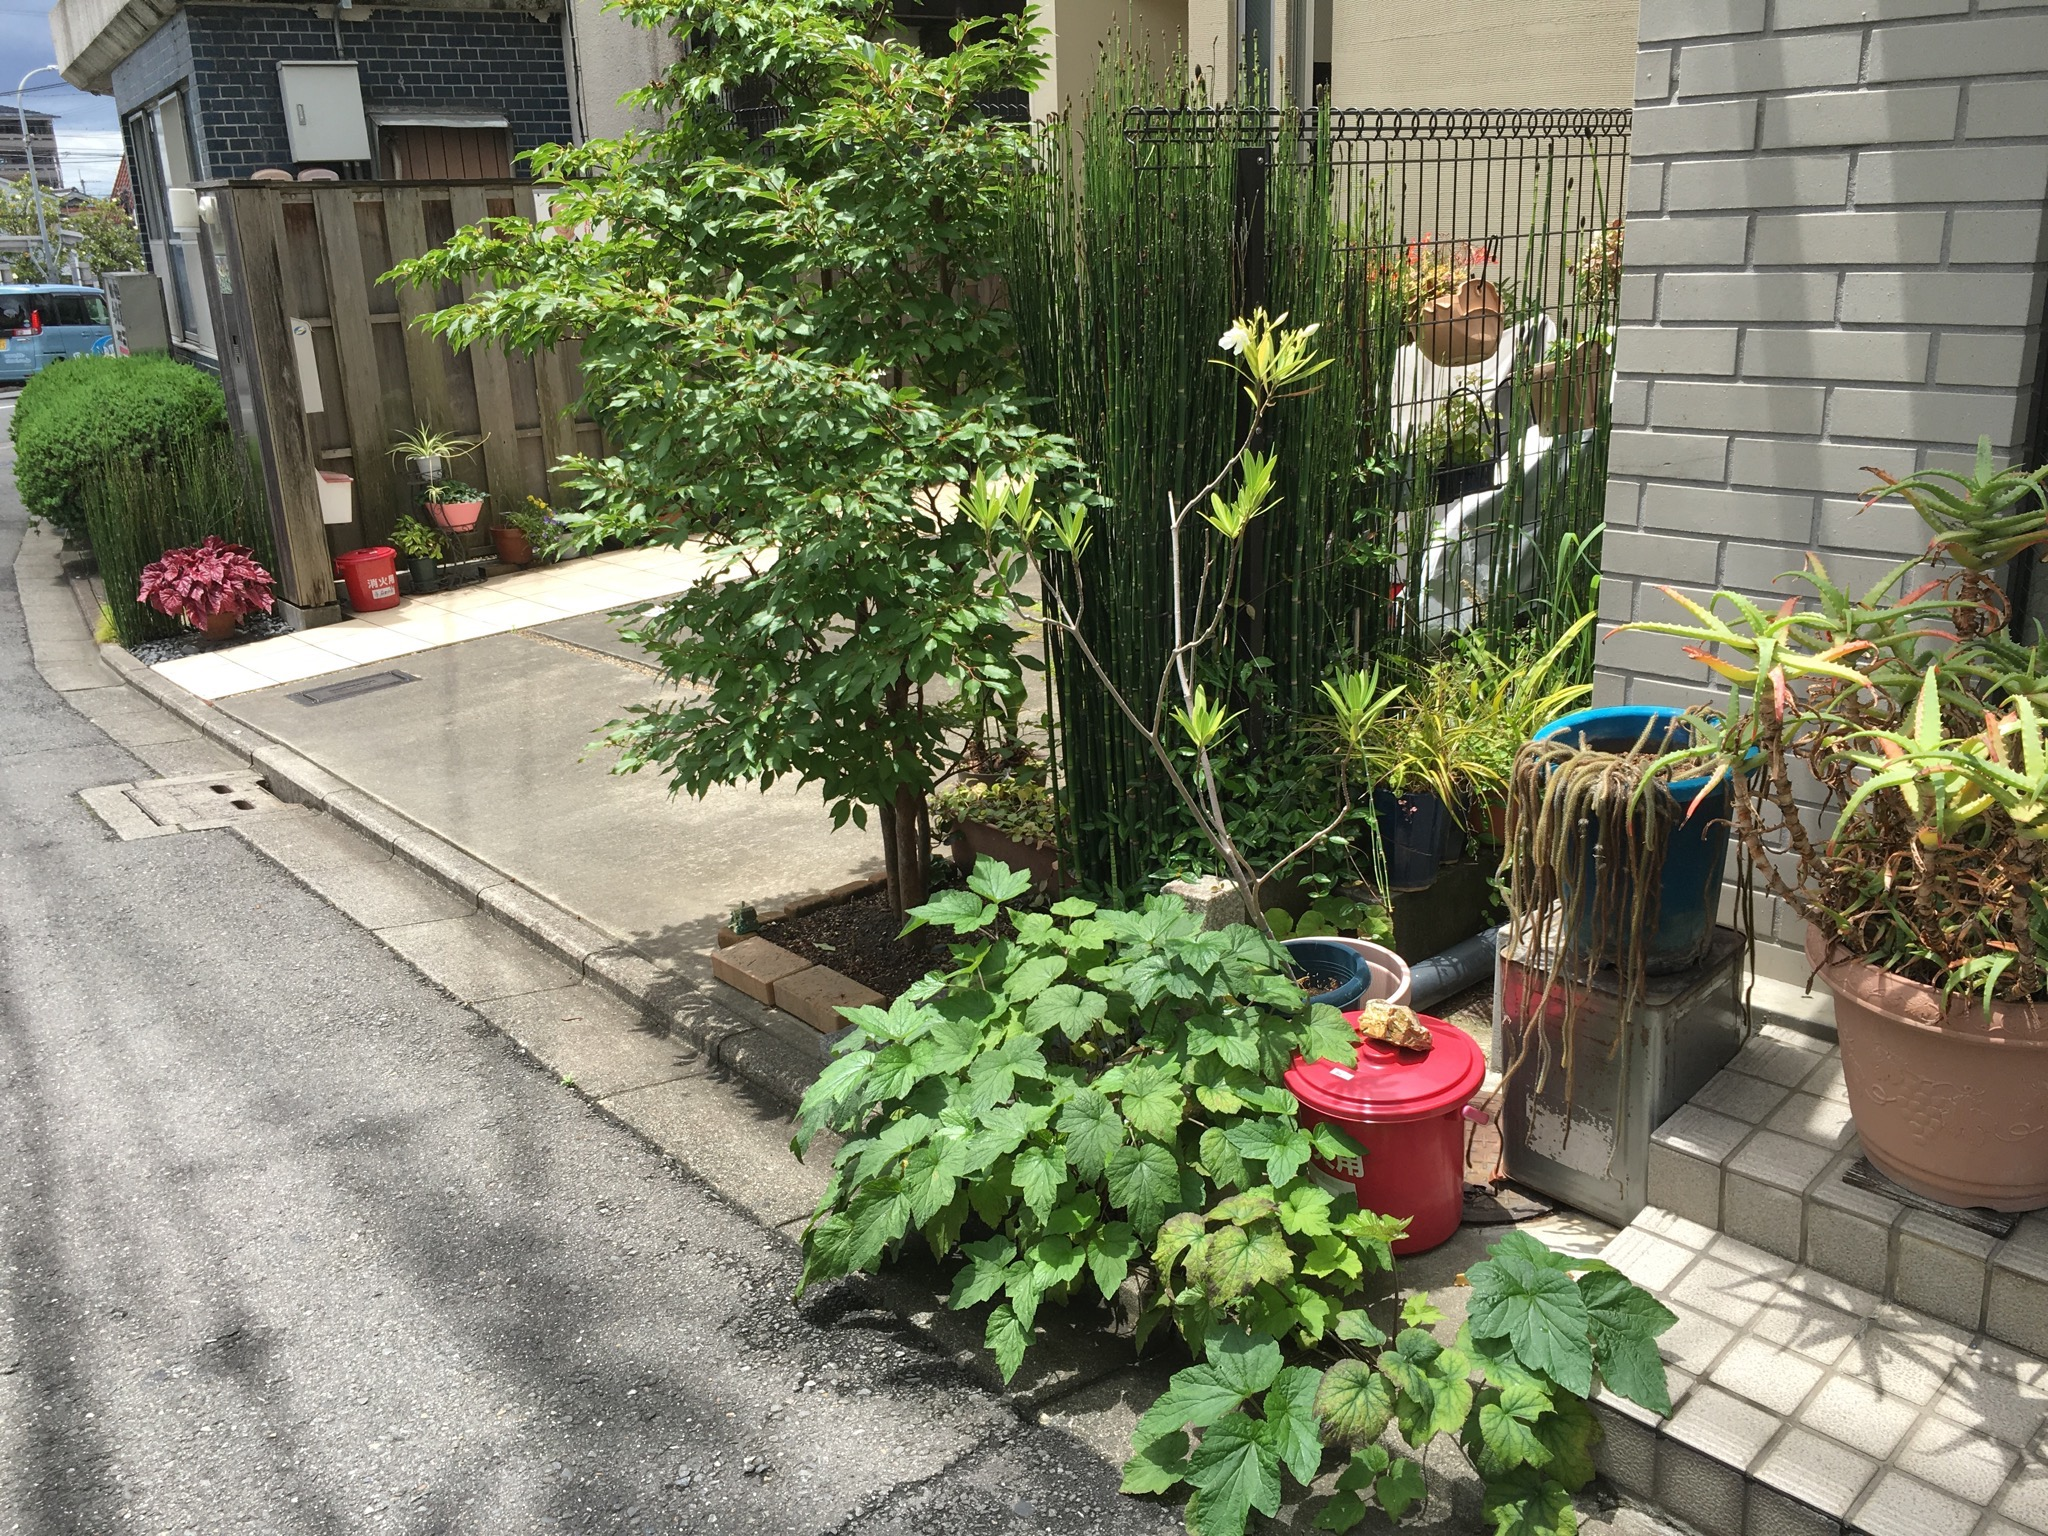 On June 22nd I discovered a local variant of the Kyoto fire bucket in Hanazono, a northern suburb of the city. The red buckets there had a lid on them! Possibly to avoid mosquitoes.